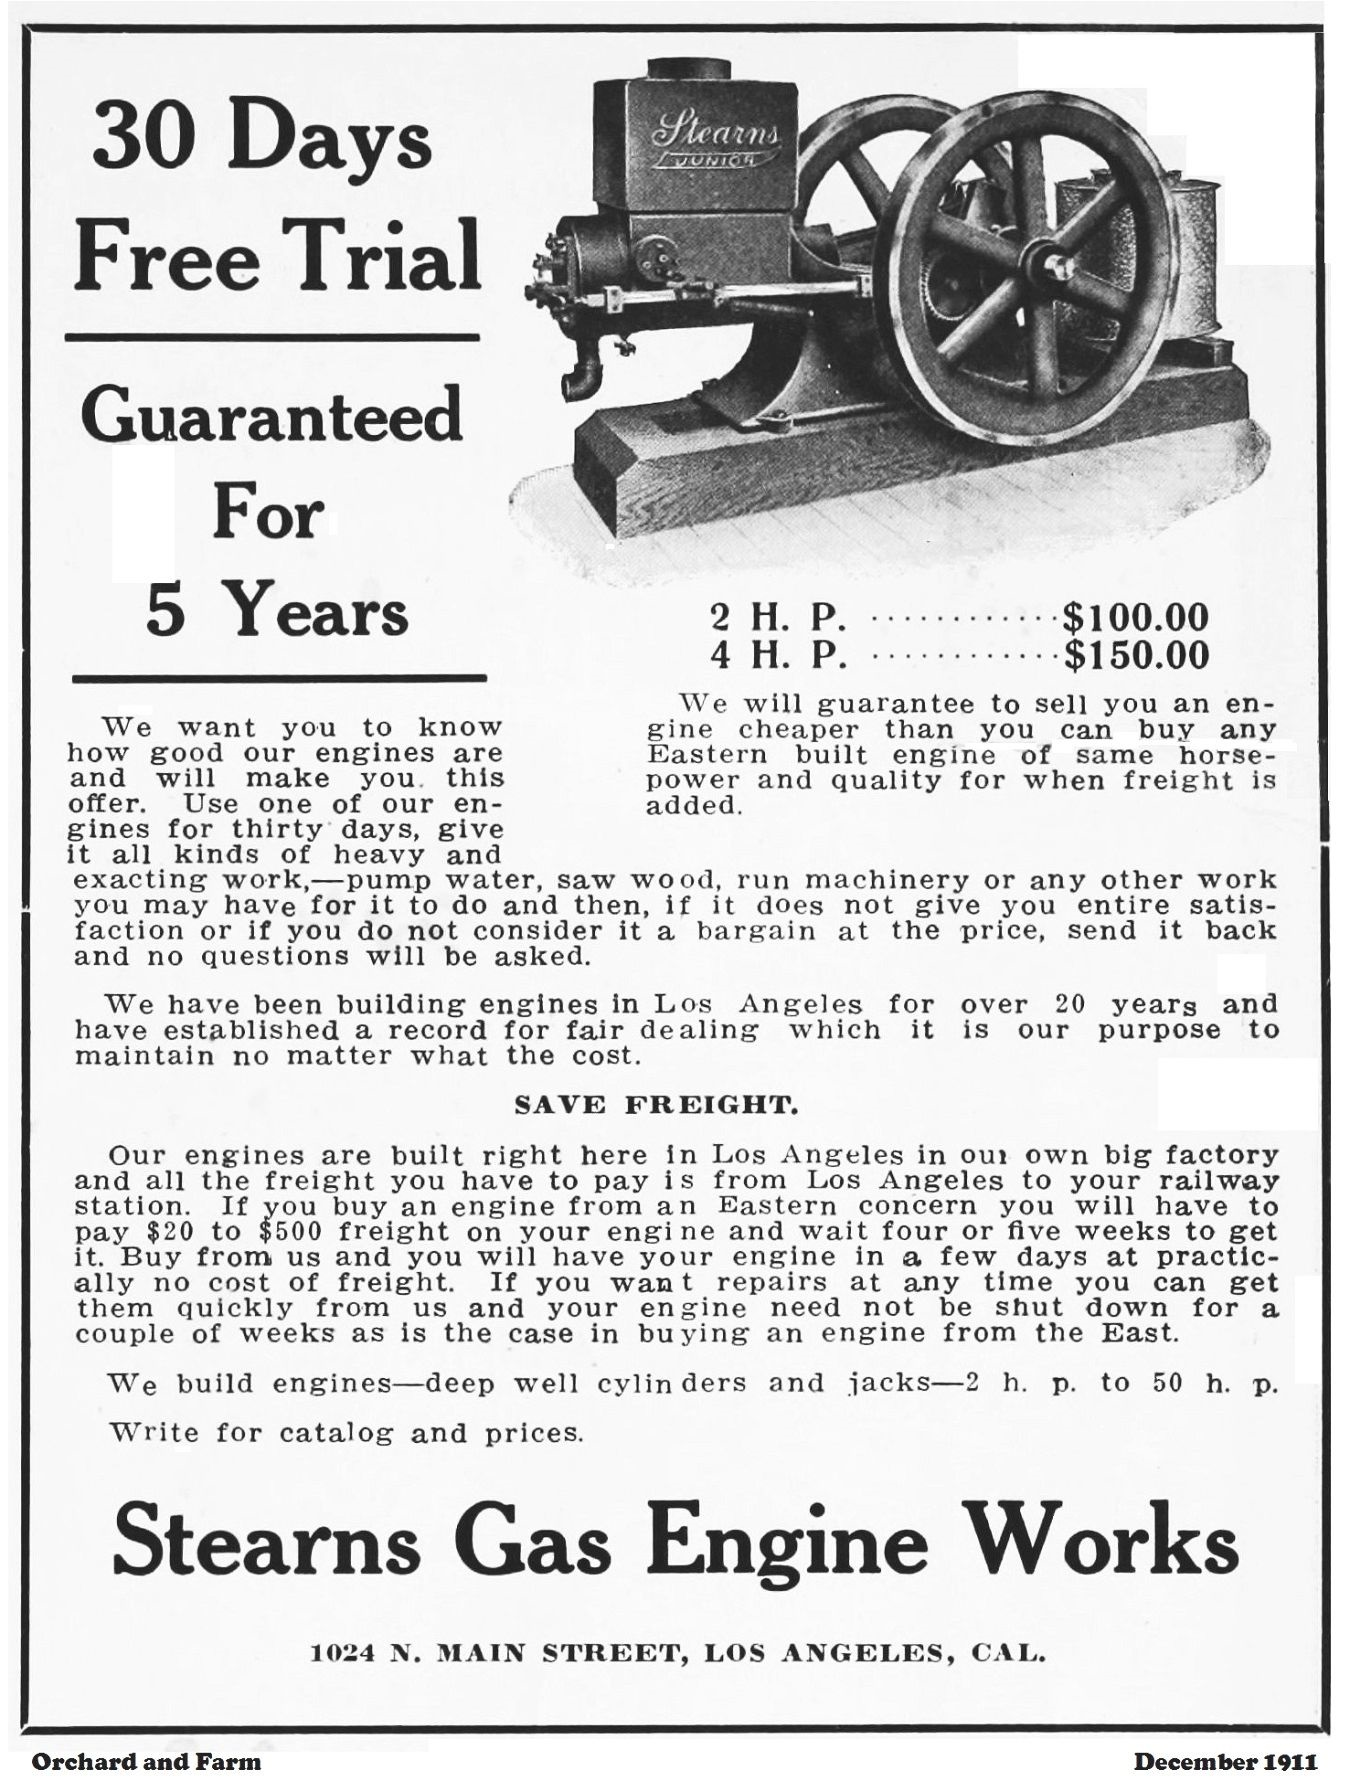 Stearns Gas Engine Works, Los Angeles, Cal  - SmokStak